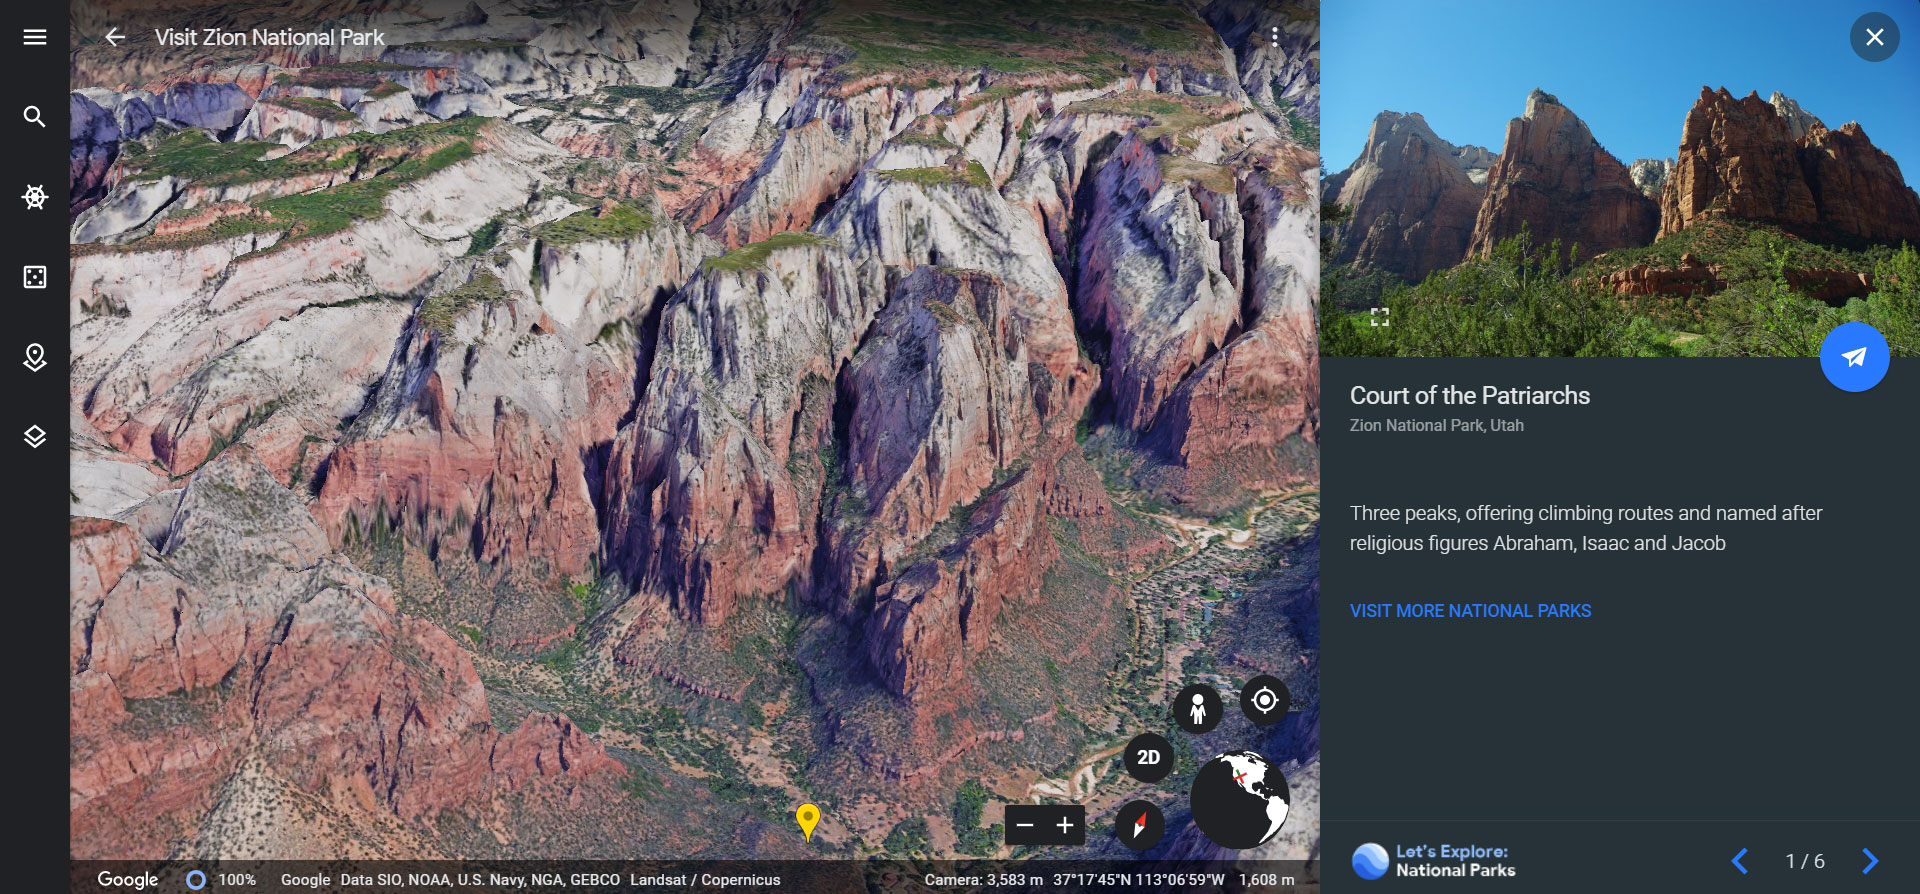 Virtual tour of Zion National Park